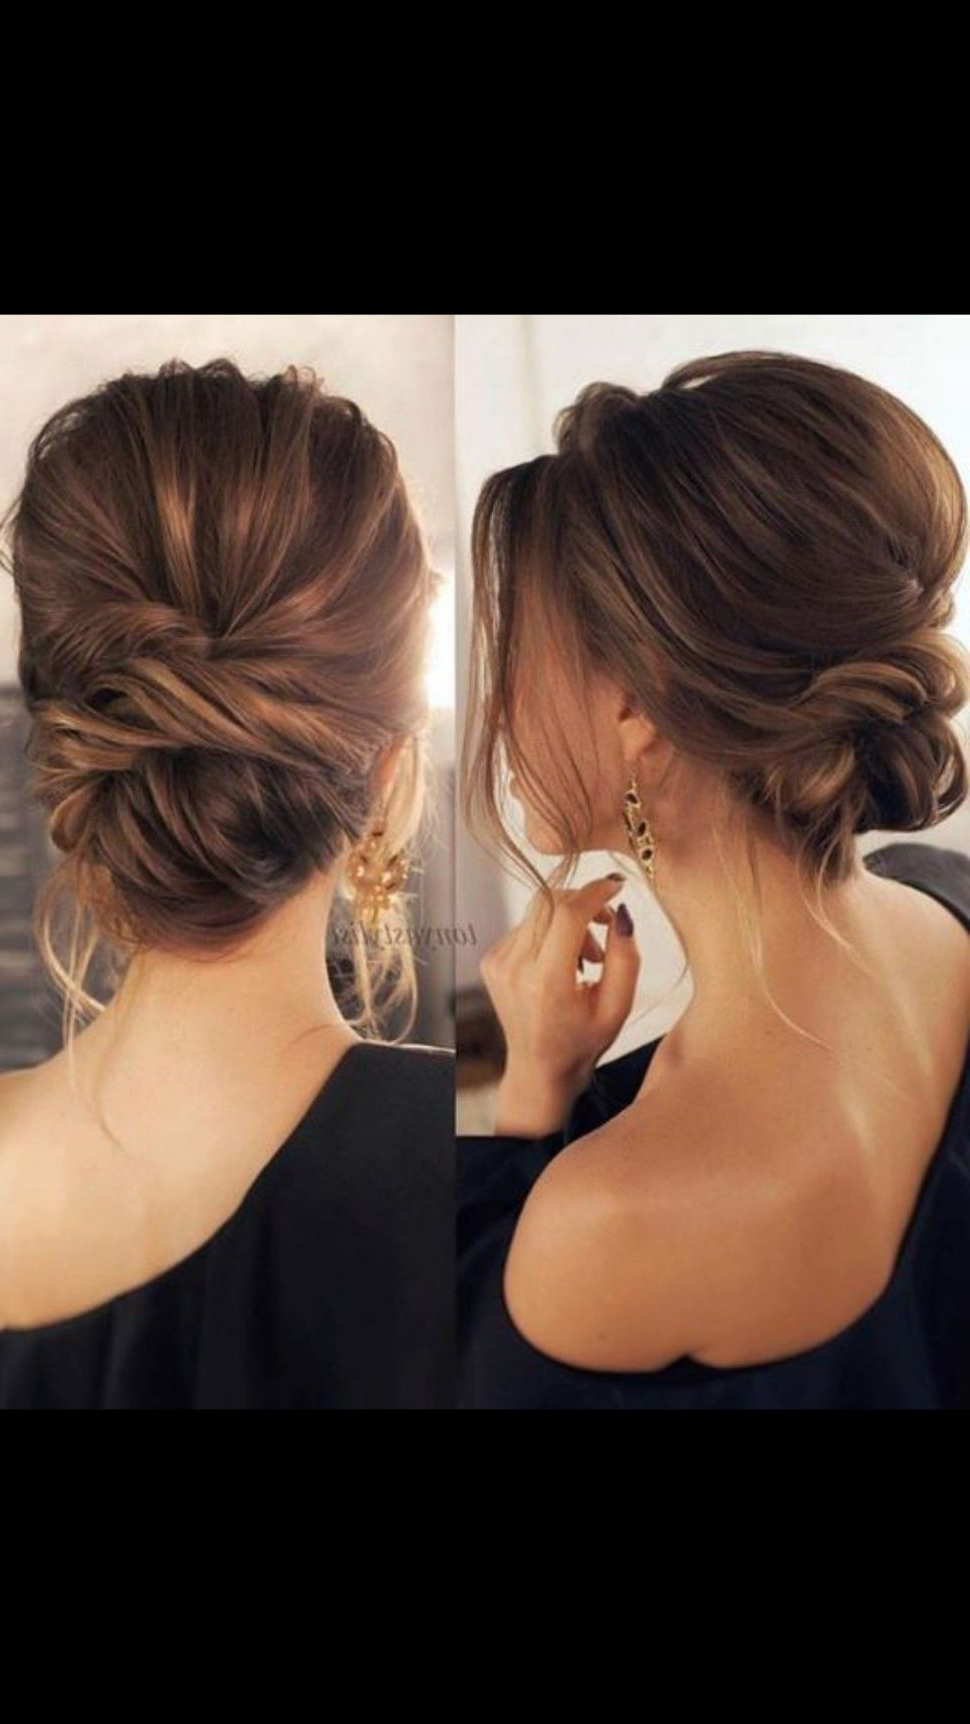 Hairstyles : Pretty Soft Low Bun Updo Bridal Hair Wedding Buns And Pertaining To Current Volumized Low Chignon Prom Hairstyles (Gallery 2 of 20)